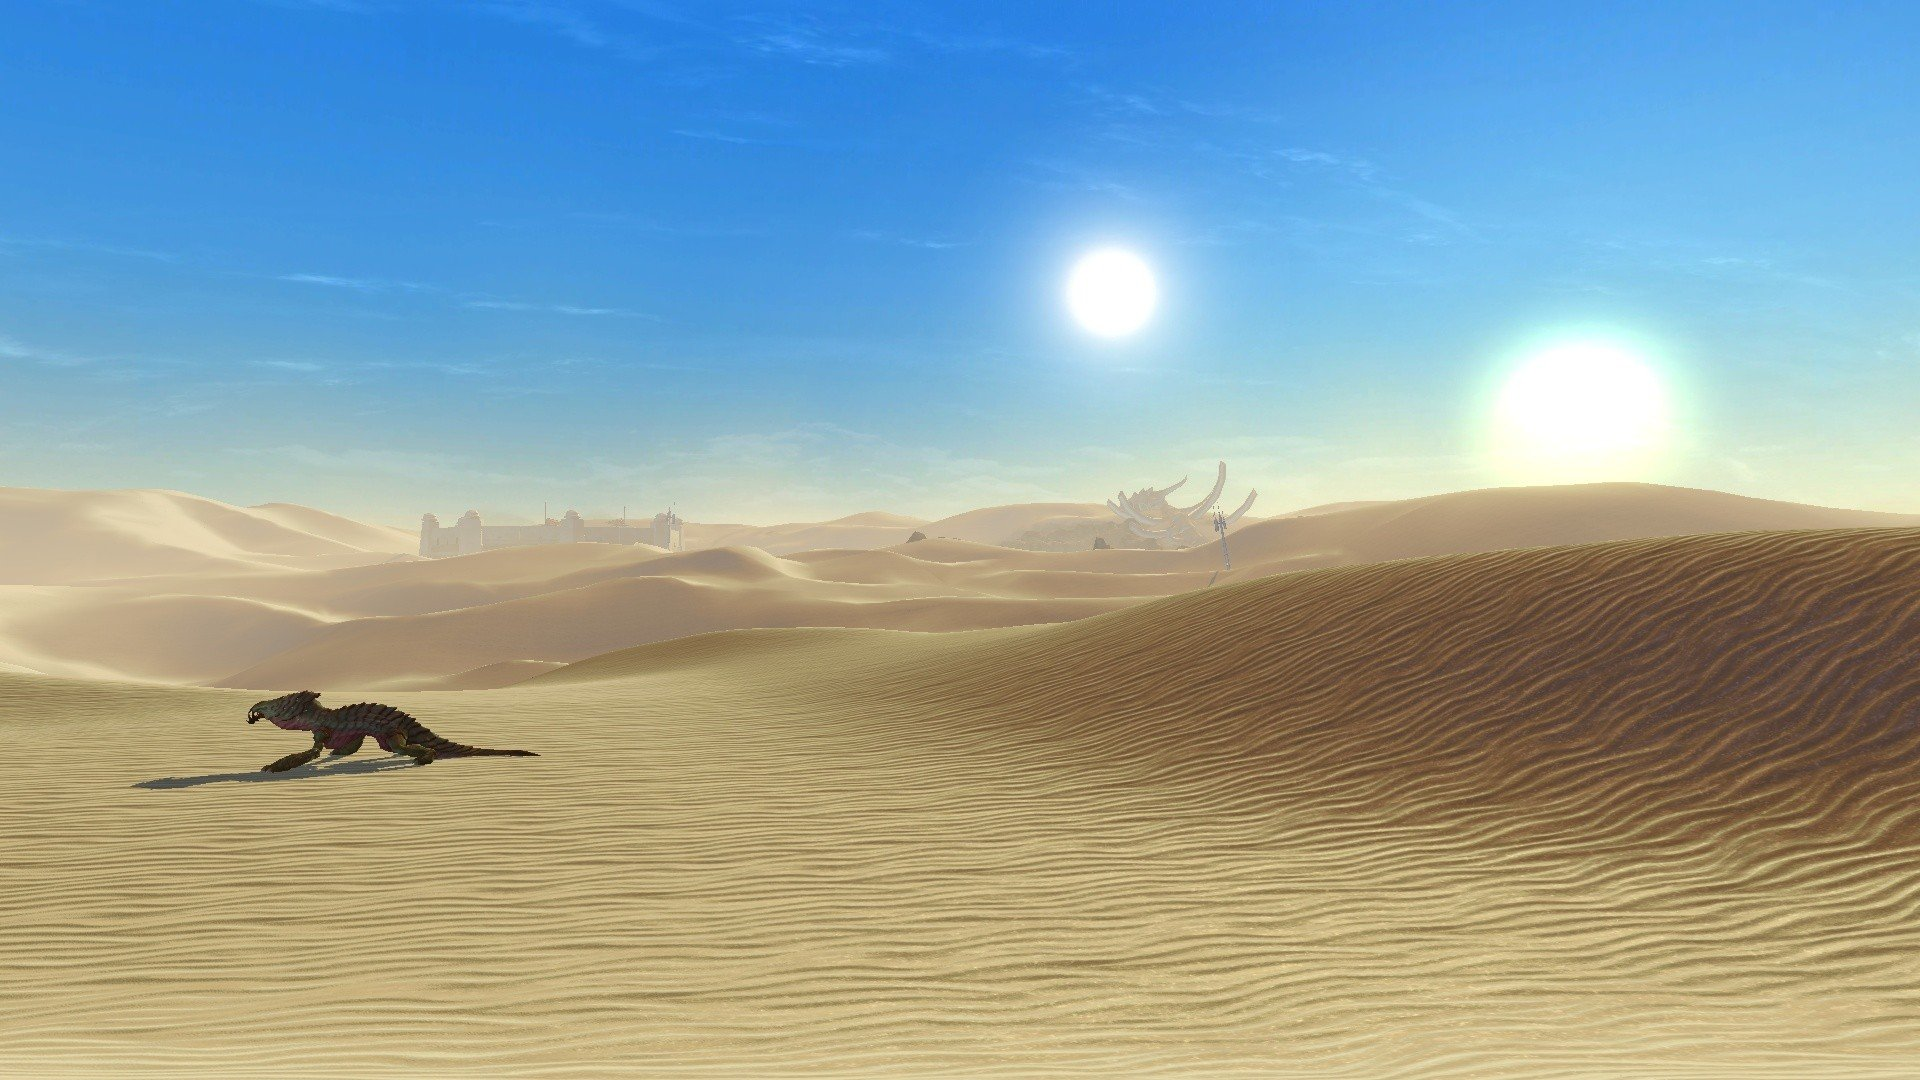 World Of Warcraft Wallpaper Hd Swtor Tatooine Mmorpg Com Star Wars The Old Republic